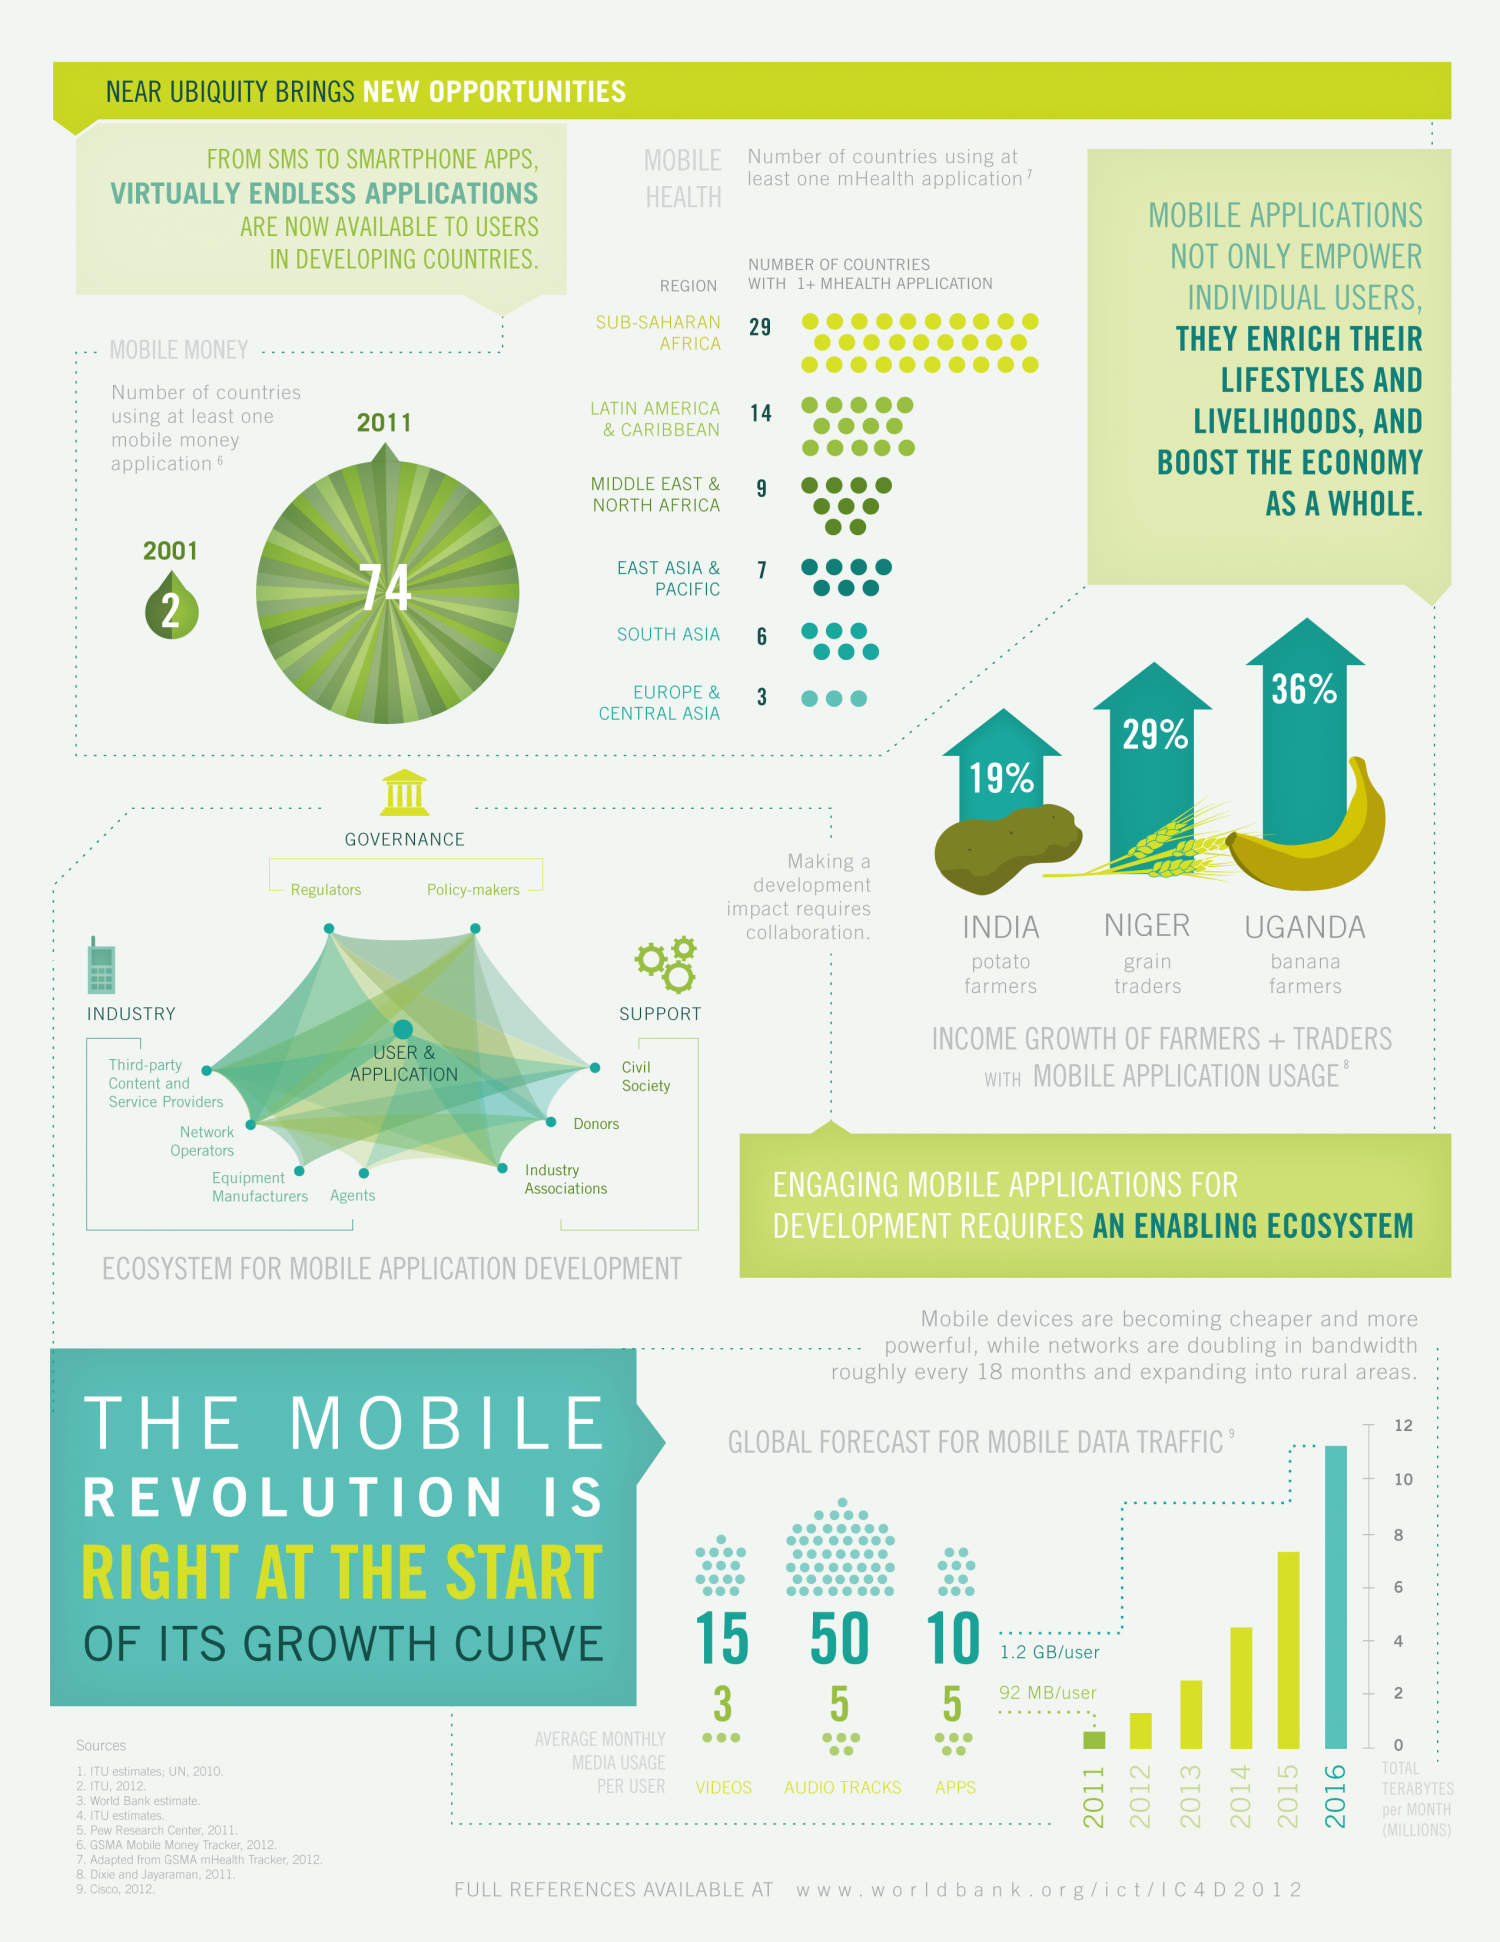 Maximizing Mobile for Development - Part 2 Infographic